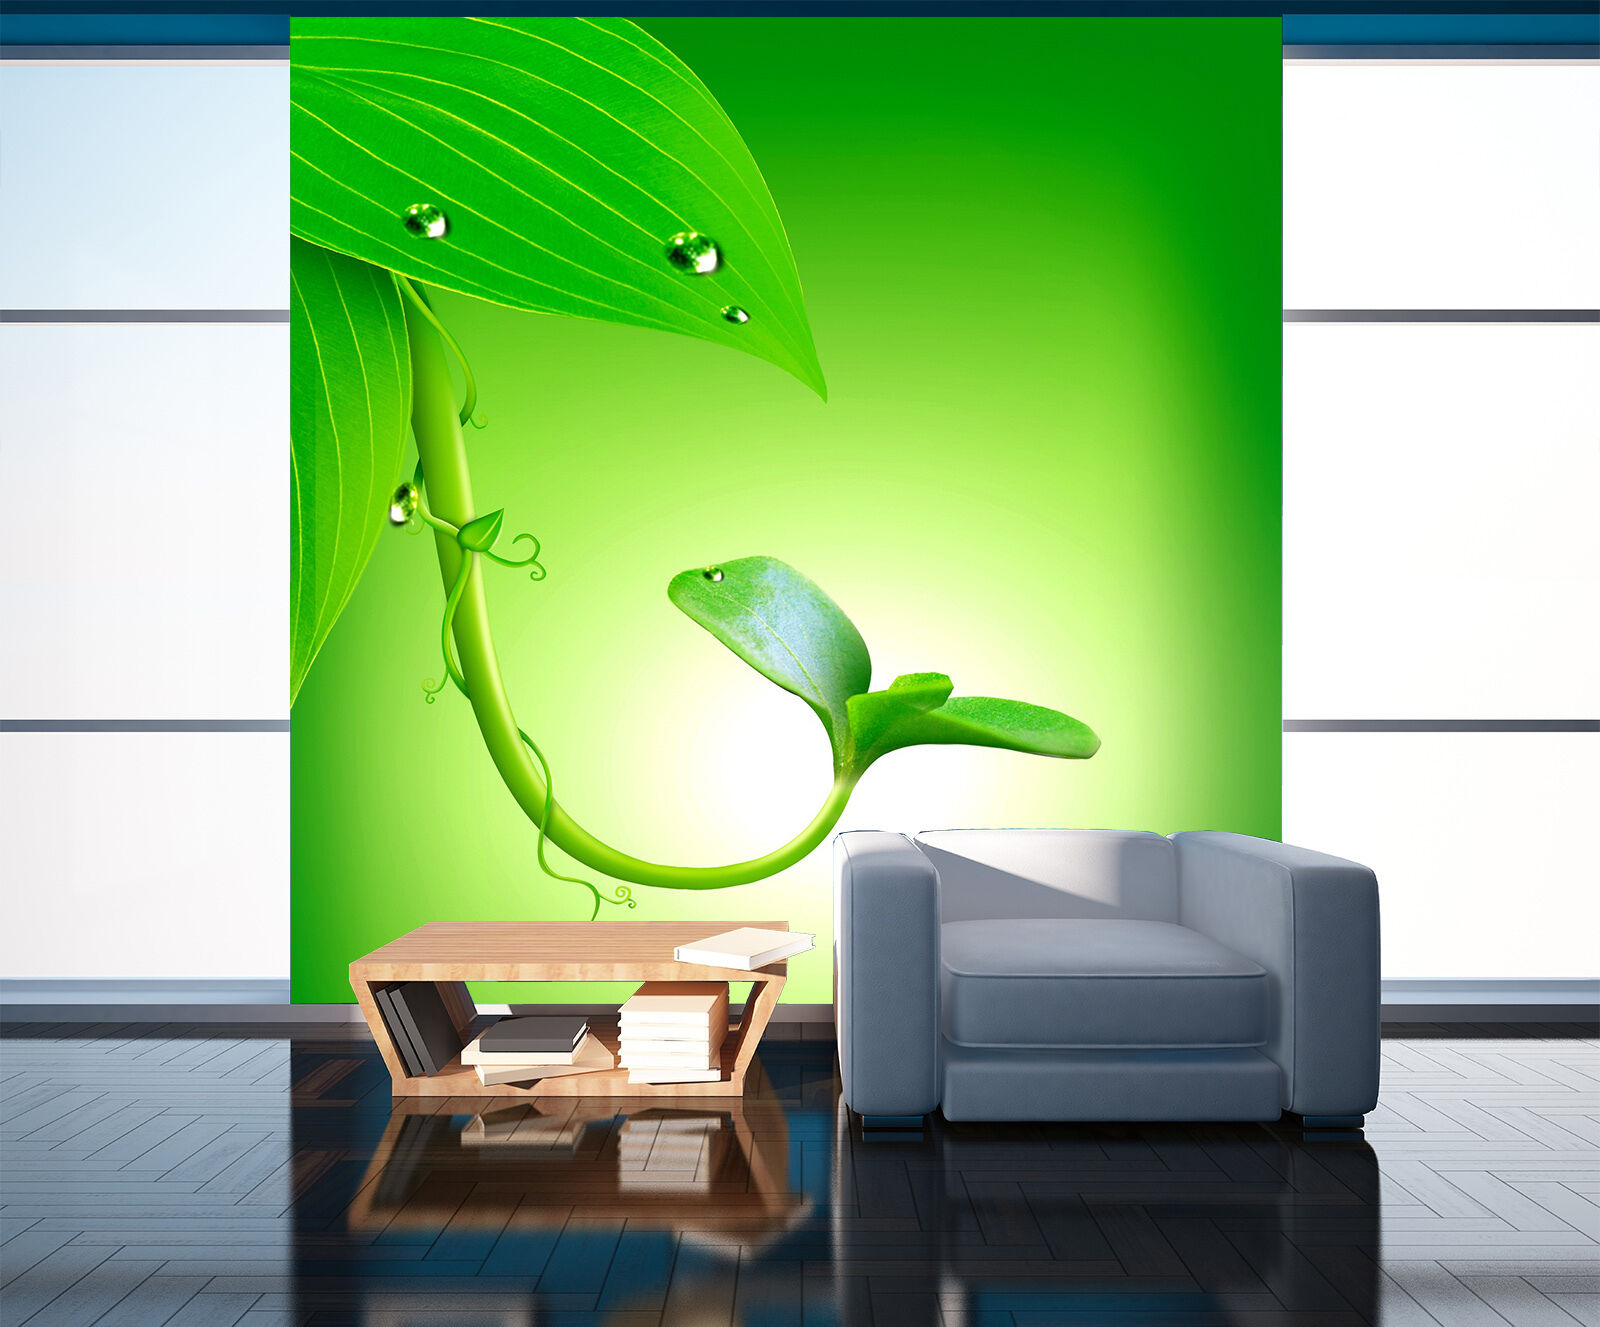 3D Buds, dew 4576 Wall Paper Print Wall Decal Deco Indoor Wall Murals